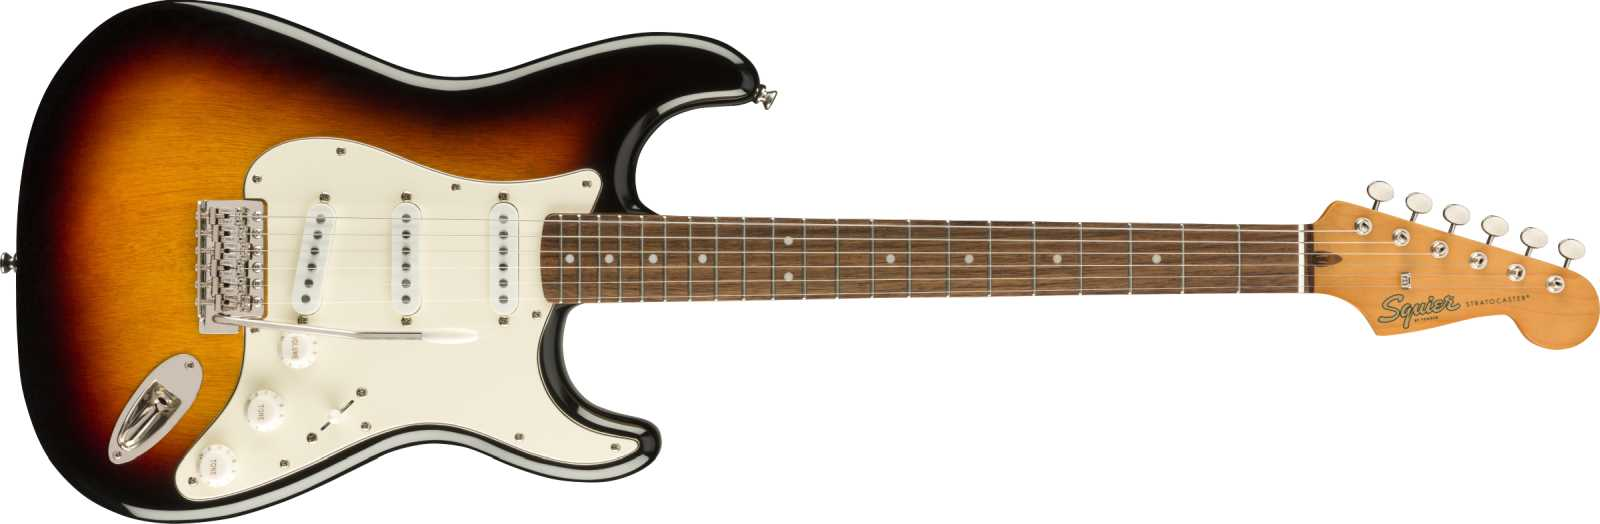 Squier Classic Vibe 60s Stratocaster LRL 3TS